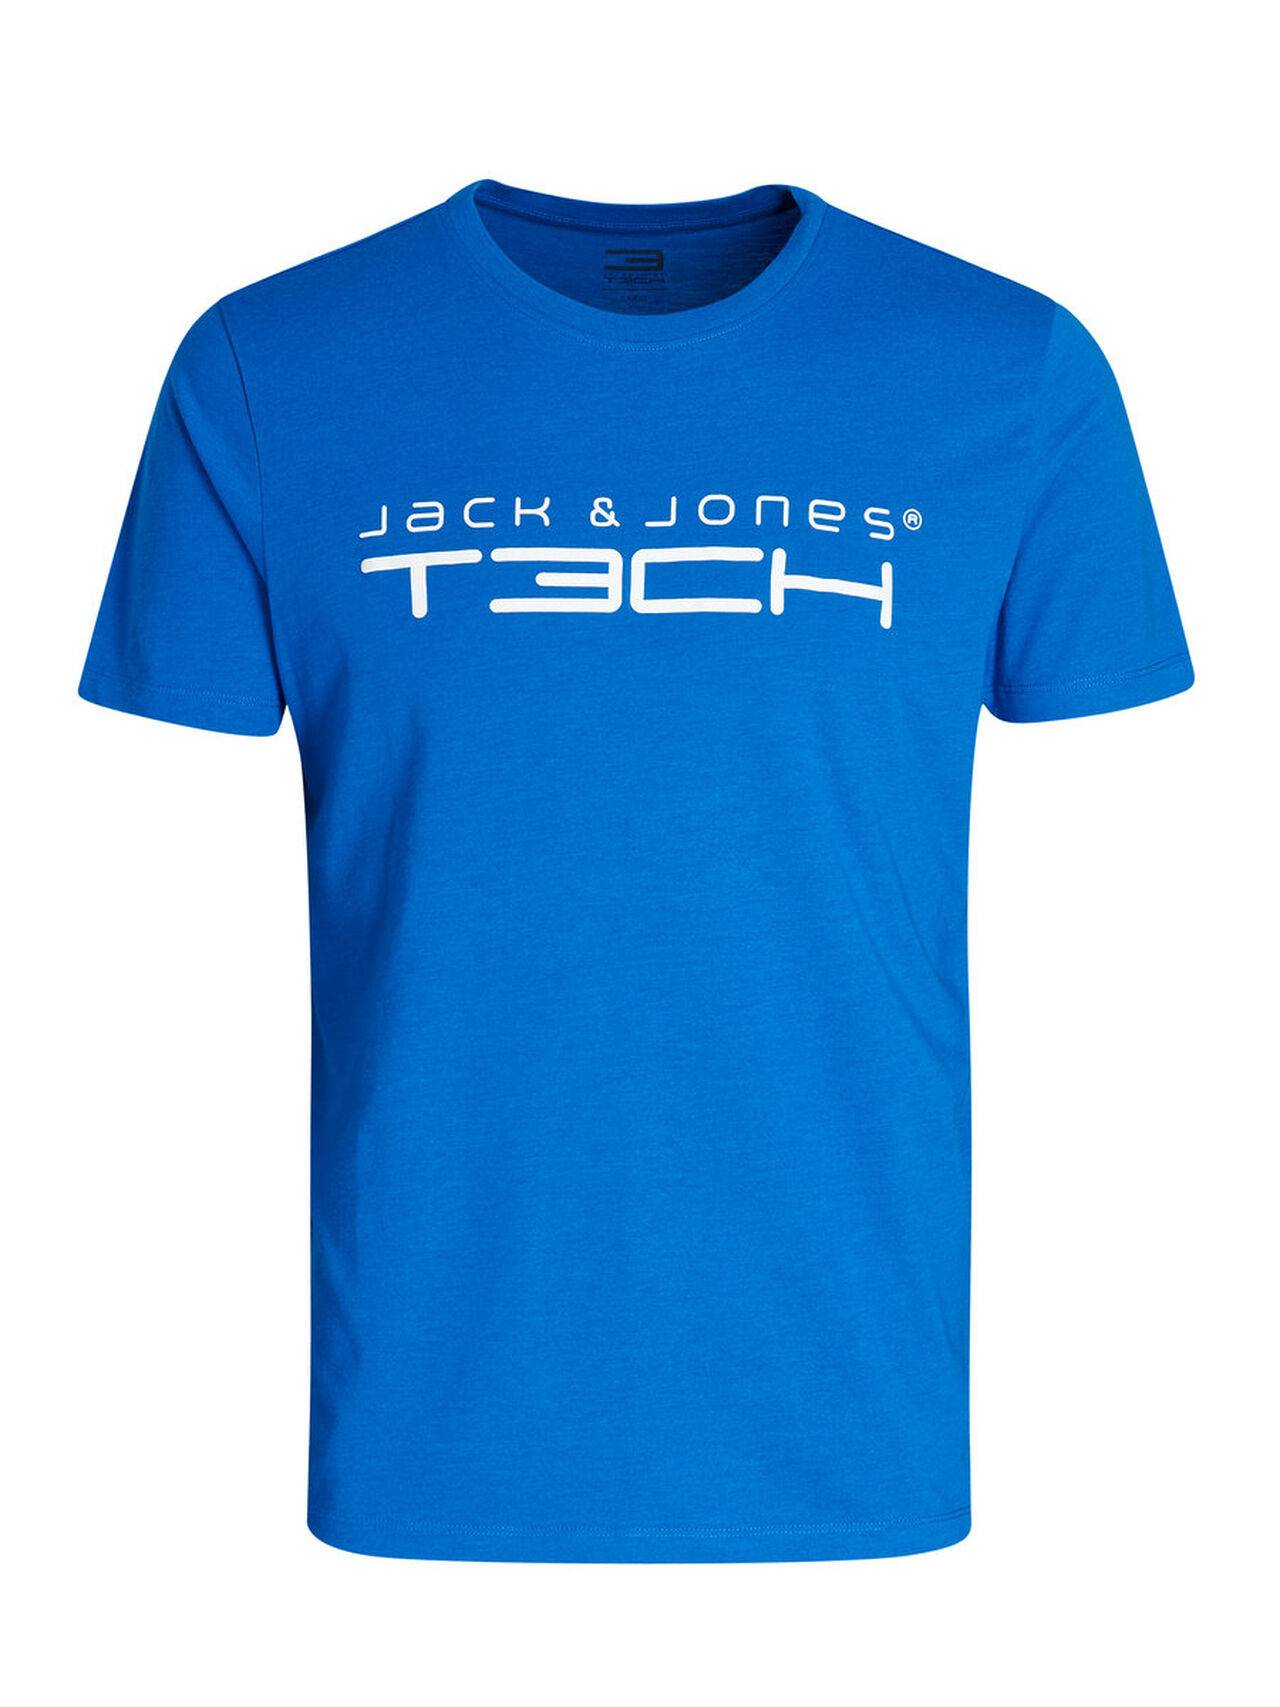 Jack & Jones Printed Sports T-Shirt Skydiver